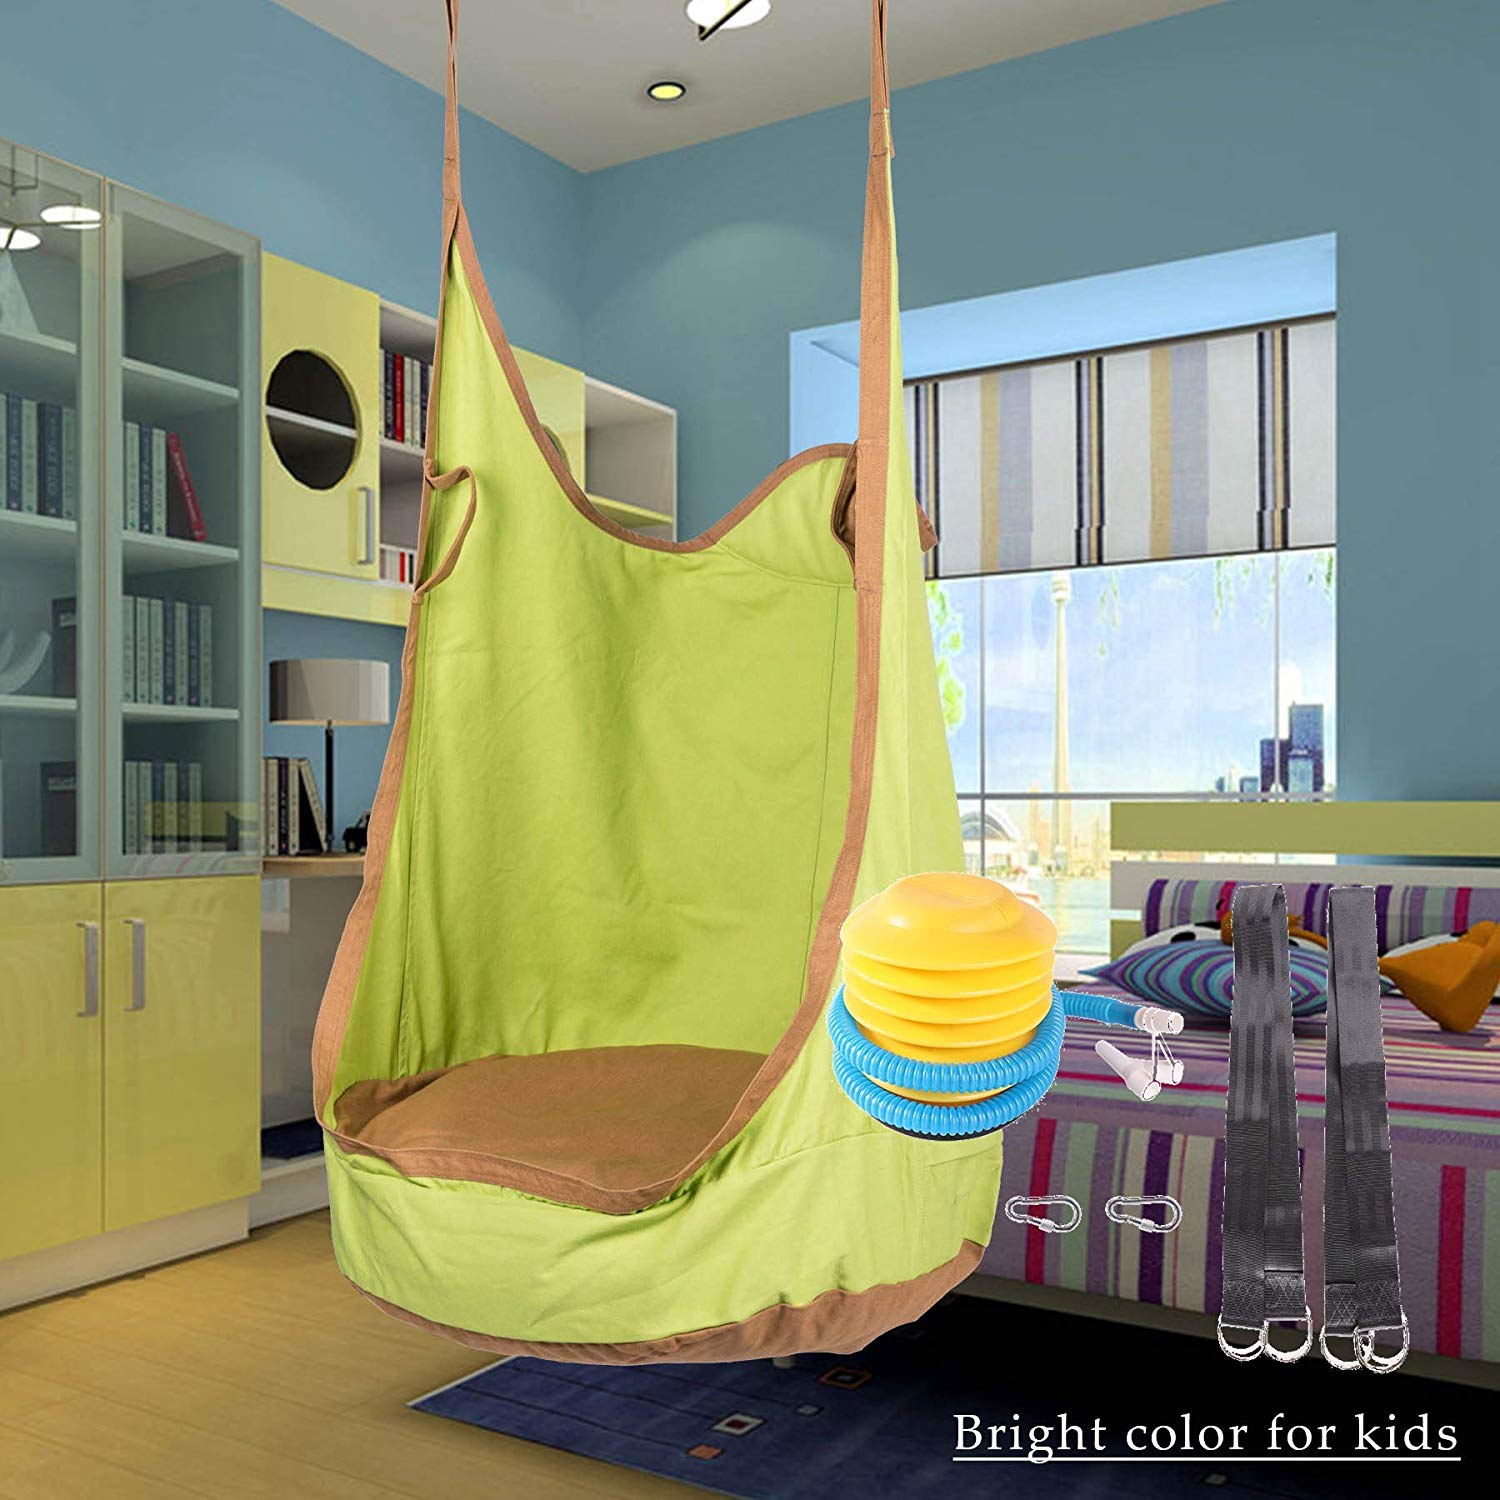 Review of CO-Z Kids Pod Swing Seat Child Hanging Hammock Chair